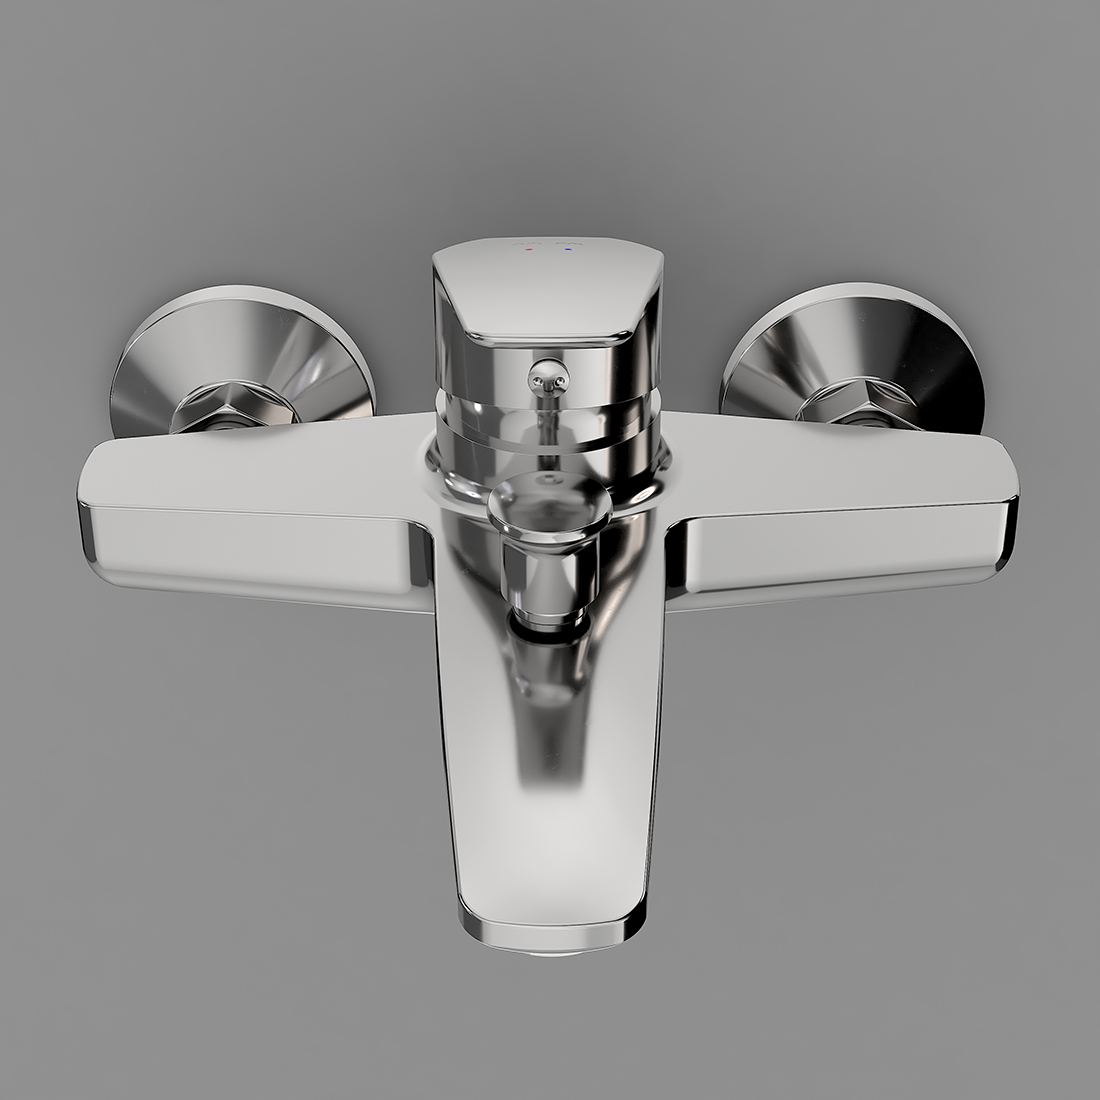 F9010000 Single-lever bath and shower mixer